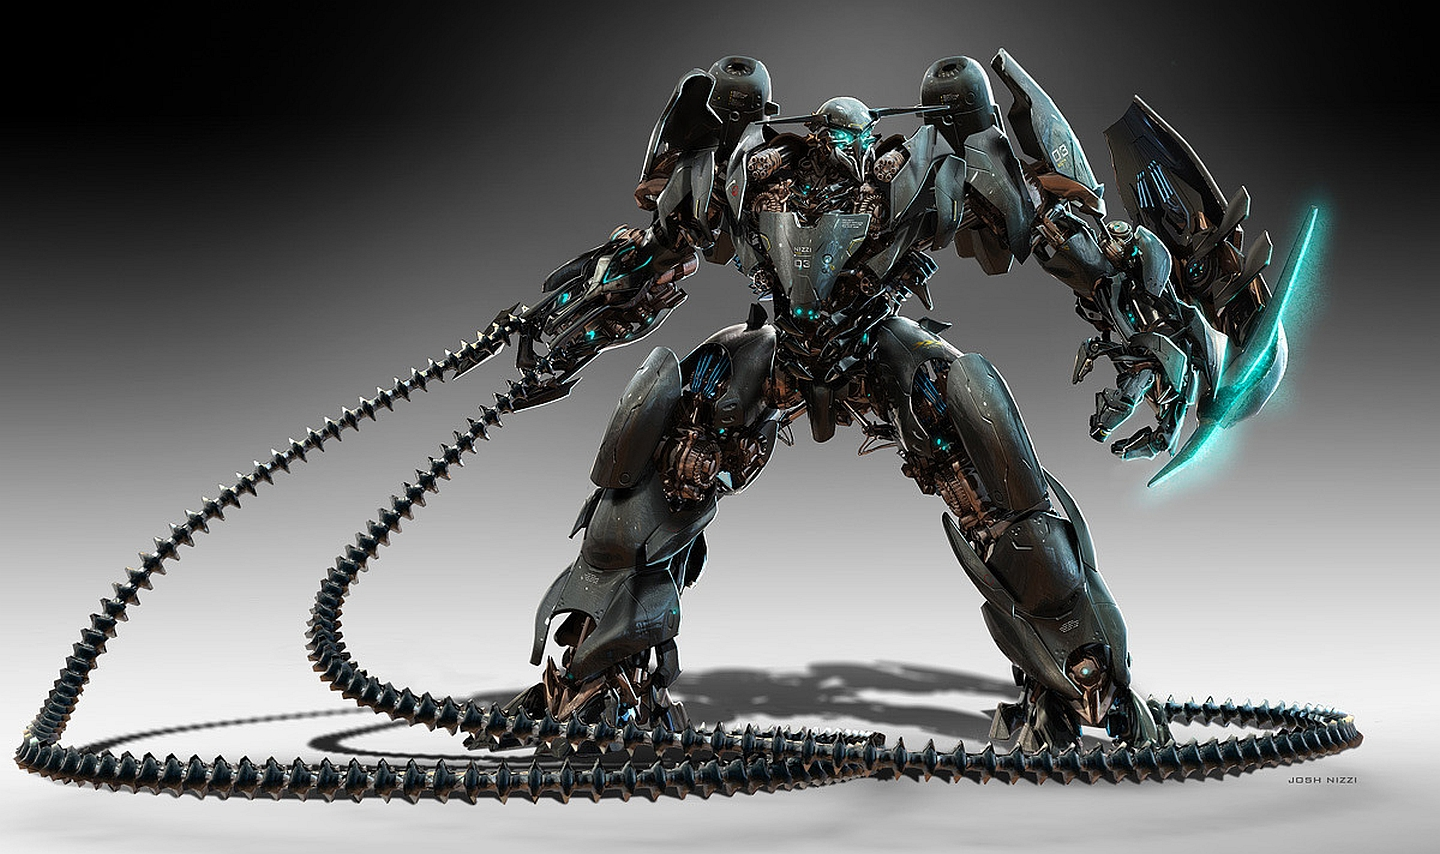 Robot wallpaper and background image 1440x854 id 410154 - Robot wallpaper 3d ...